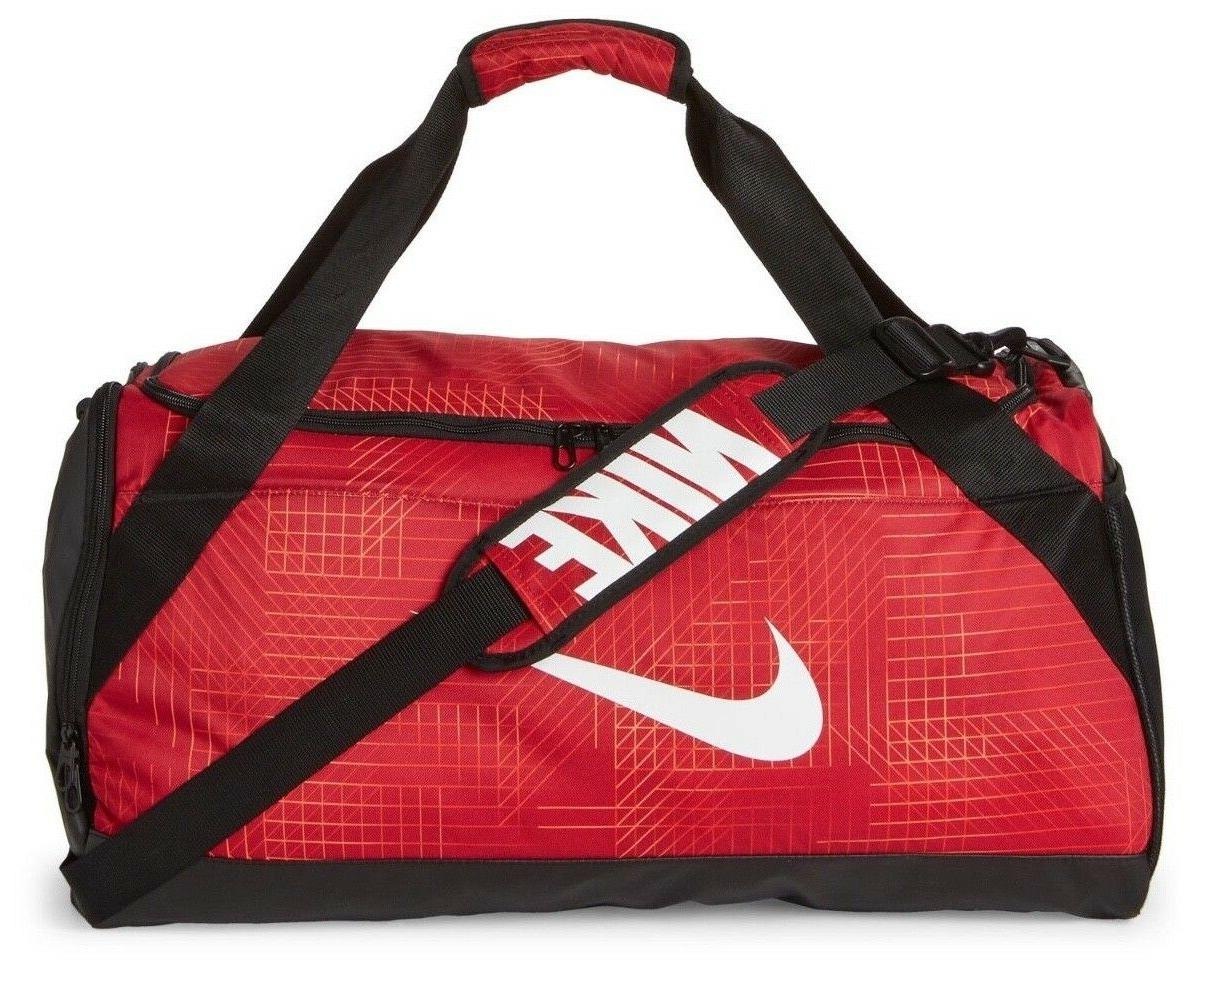 "Nike Jordan Brasilia 6 MEDIUM GEO Duffel 24"" Gym Sport Bag B"